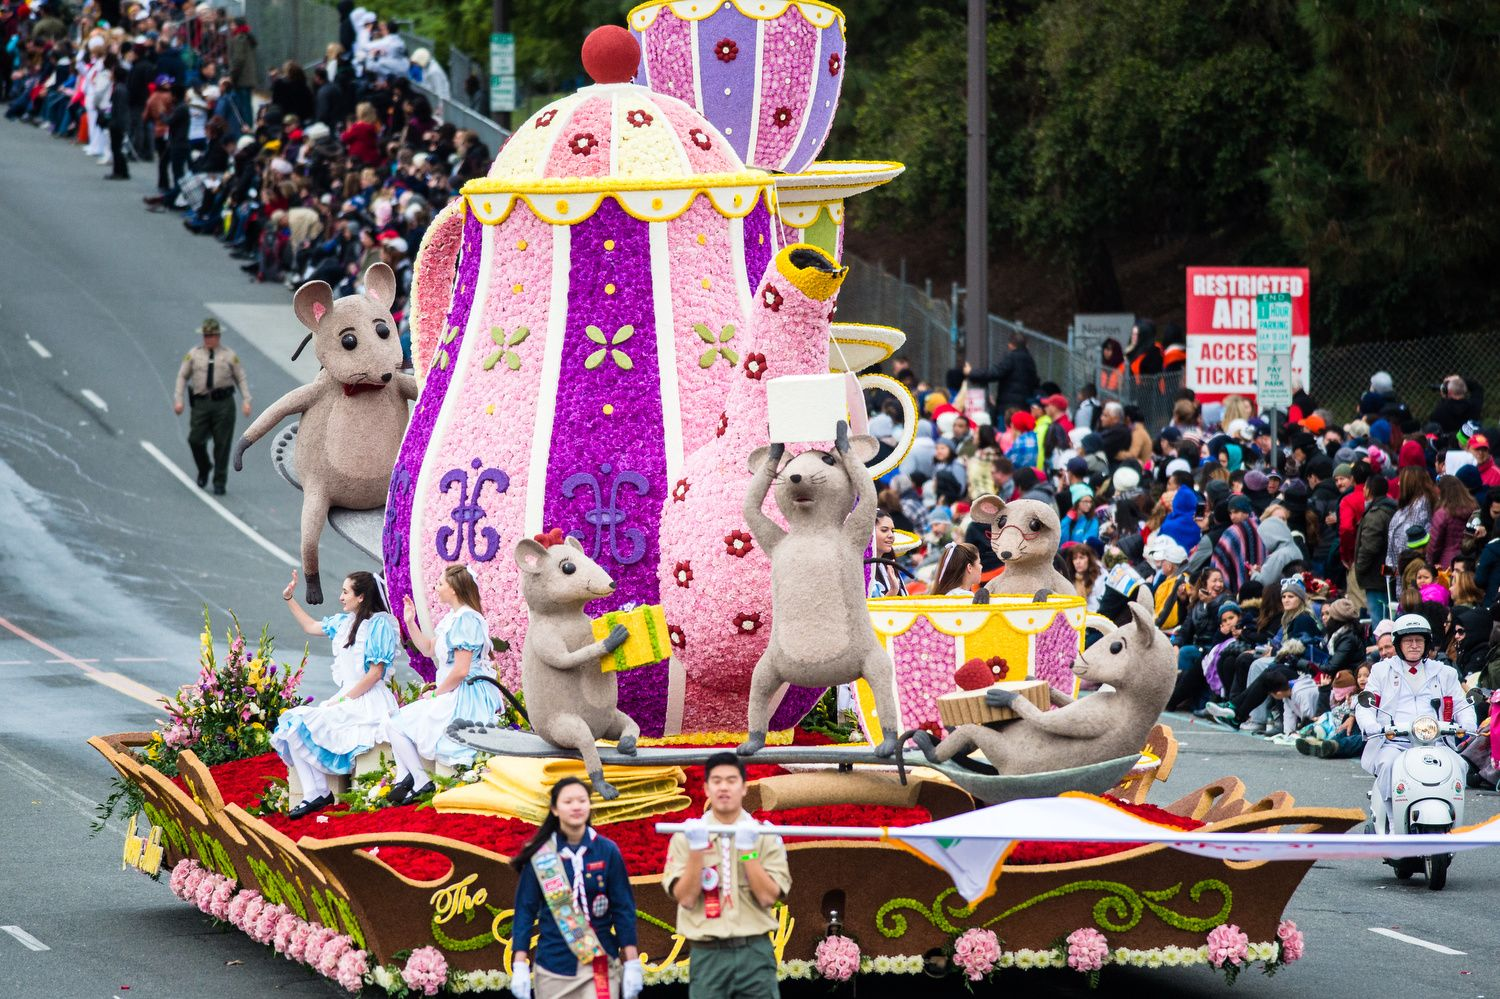 Photos From The 2017 Rose Parade Colorful Floats And Animal Themes Eclipse A Cloudy Monday Tournament Of Roses Parade Rose Parade Tournament Of Roses